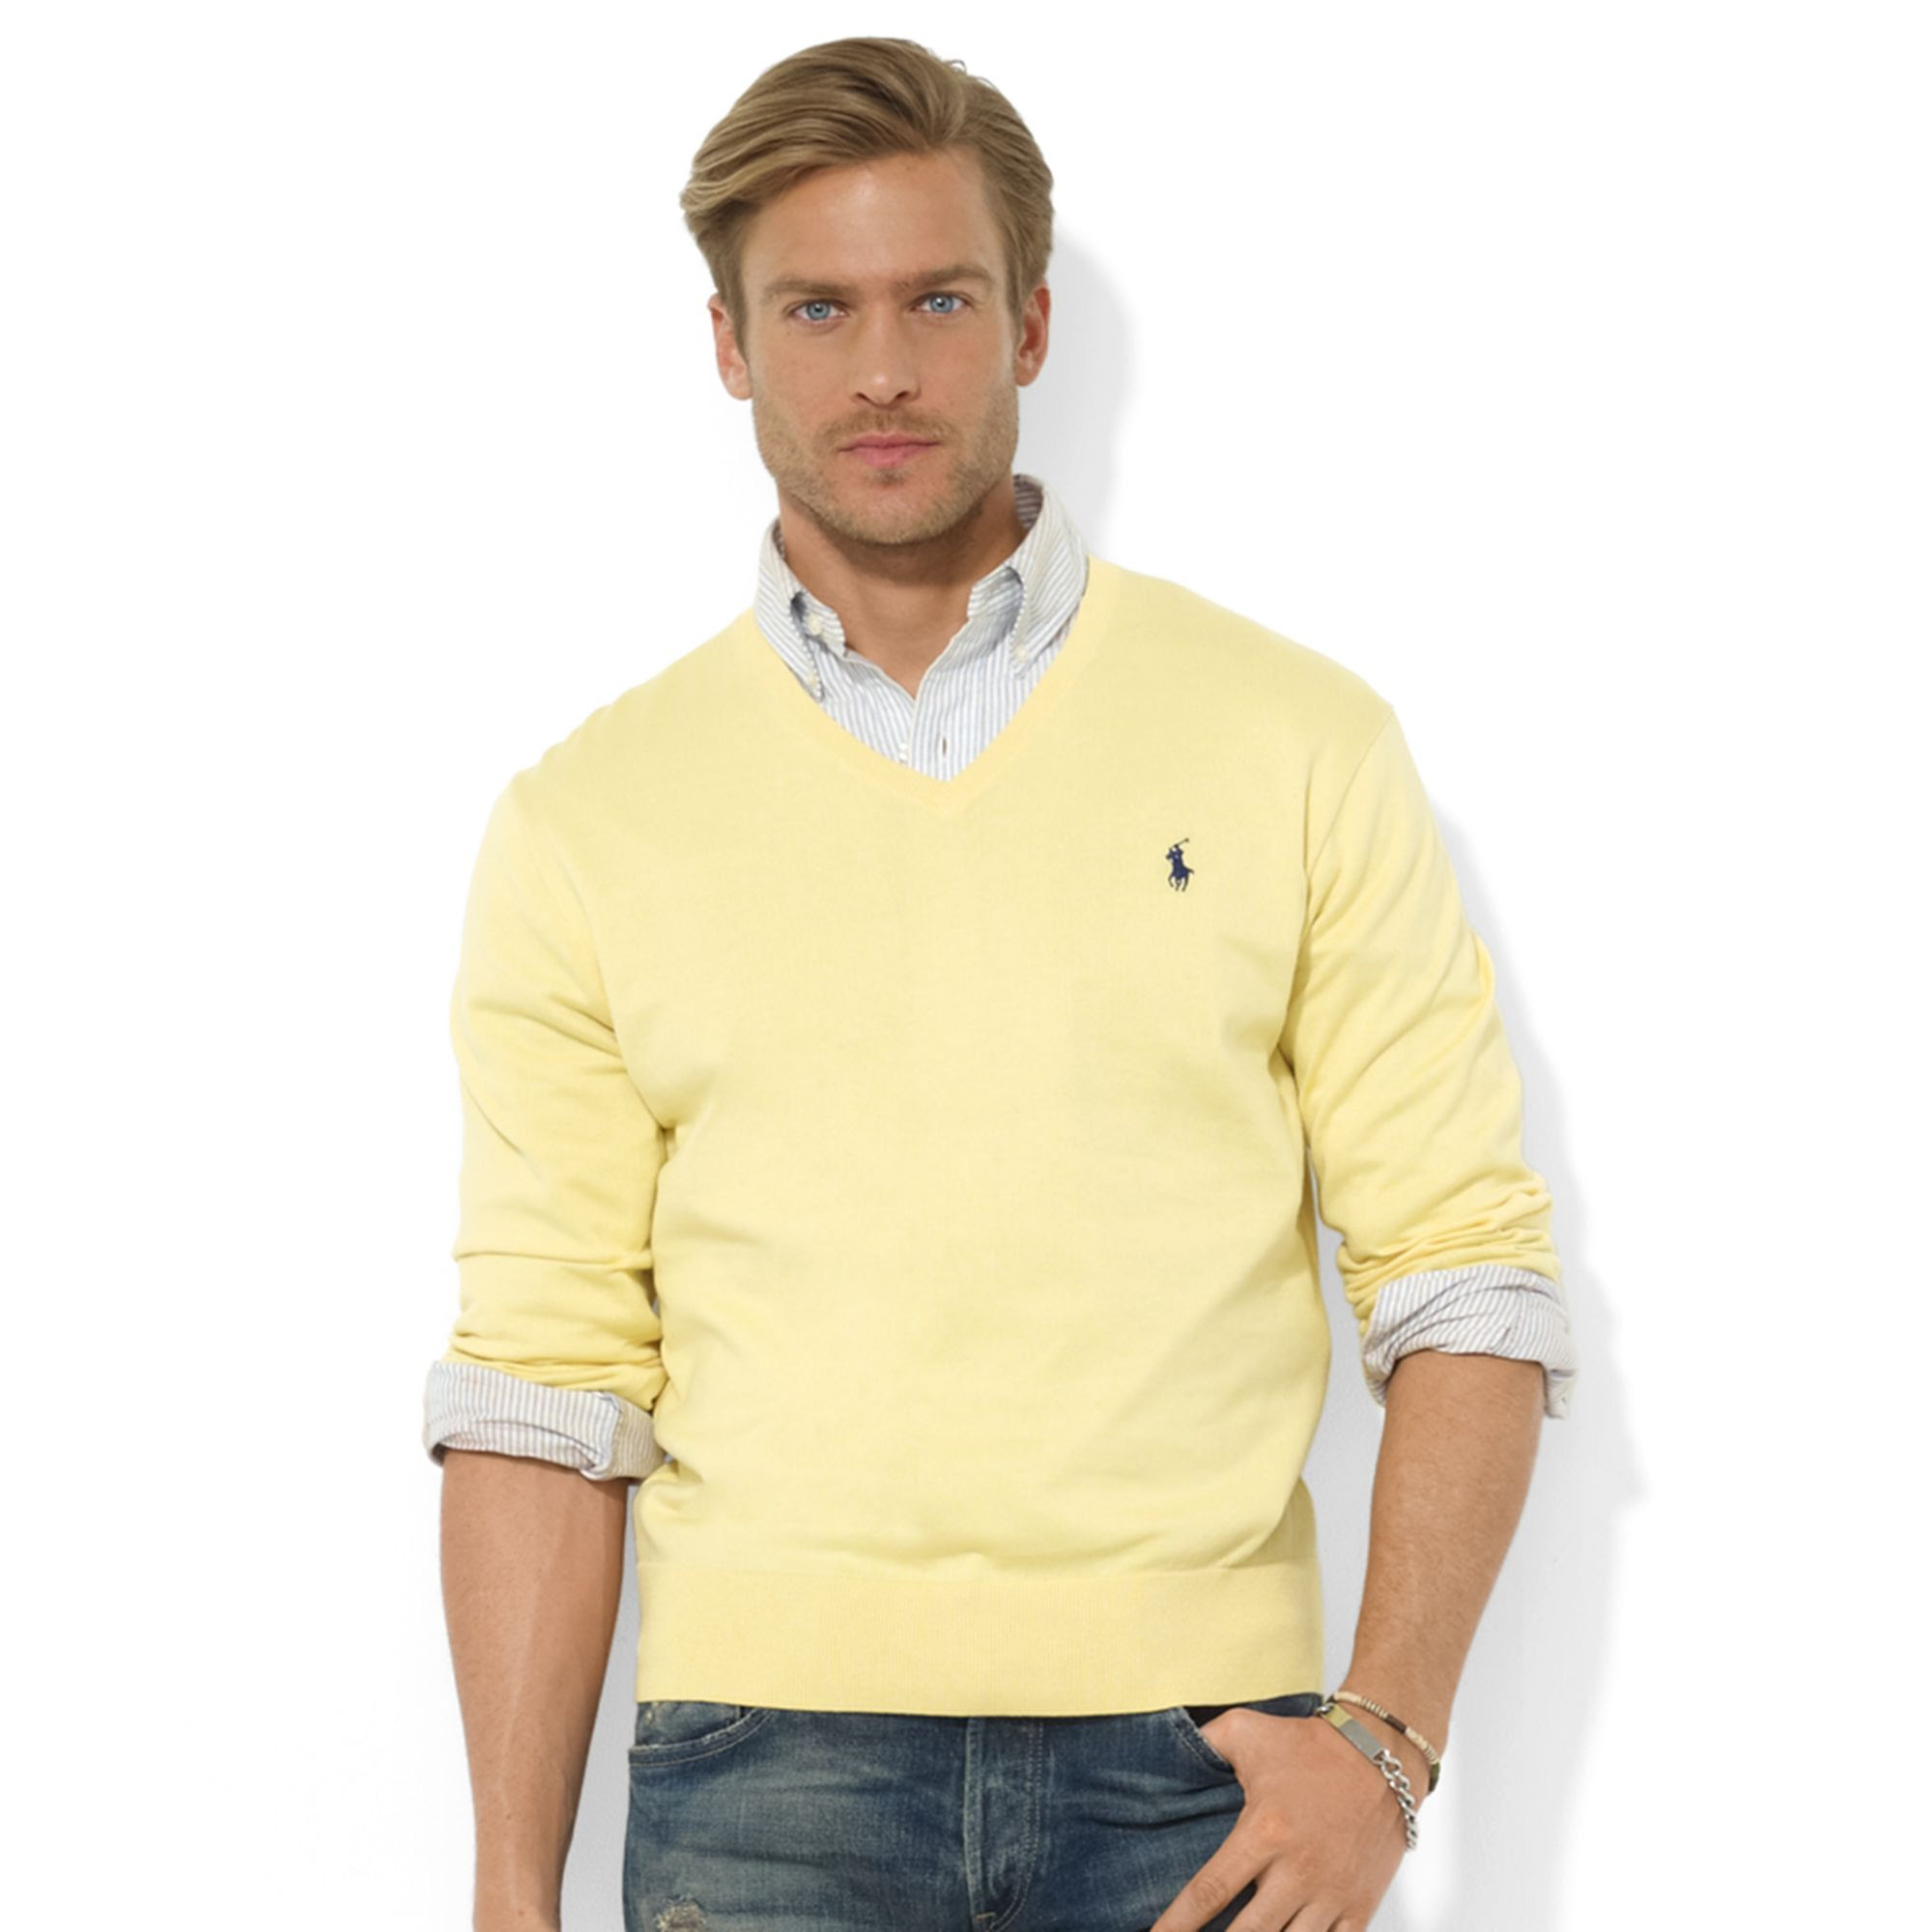 Cardigan bright men yellow outfit fisher